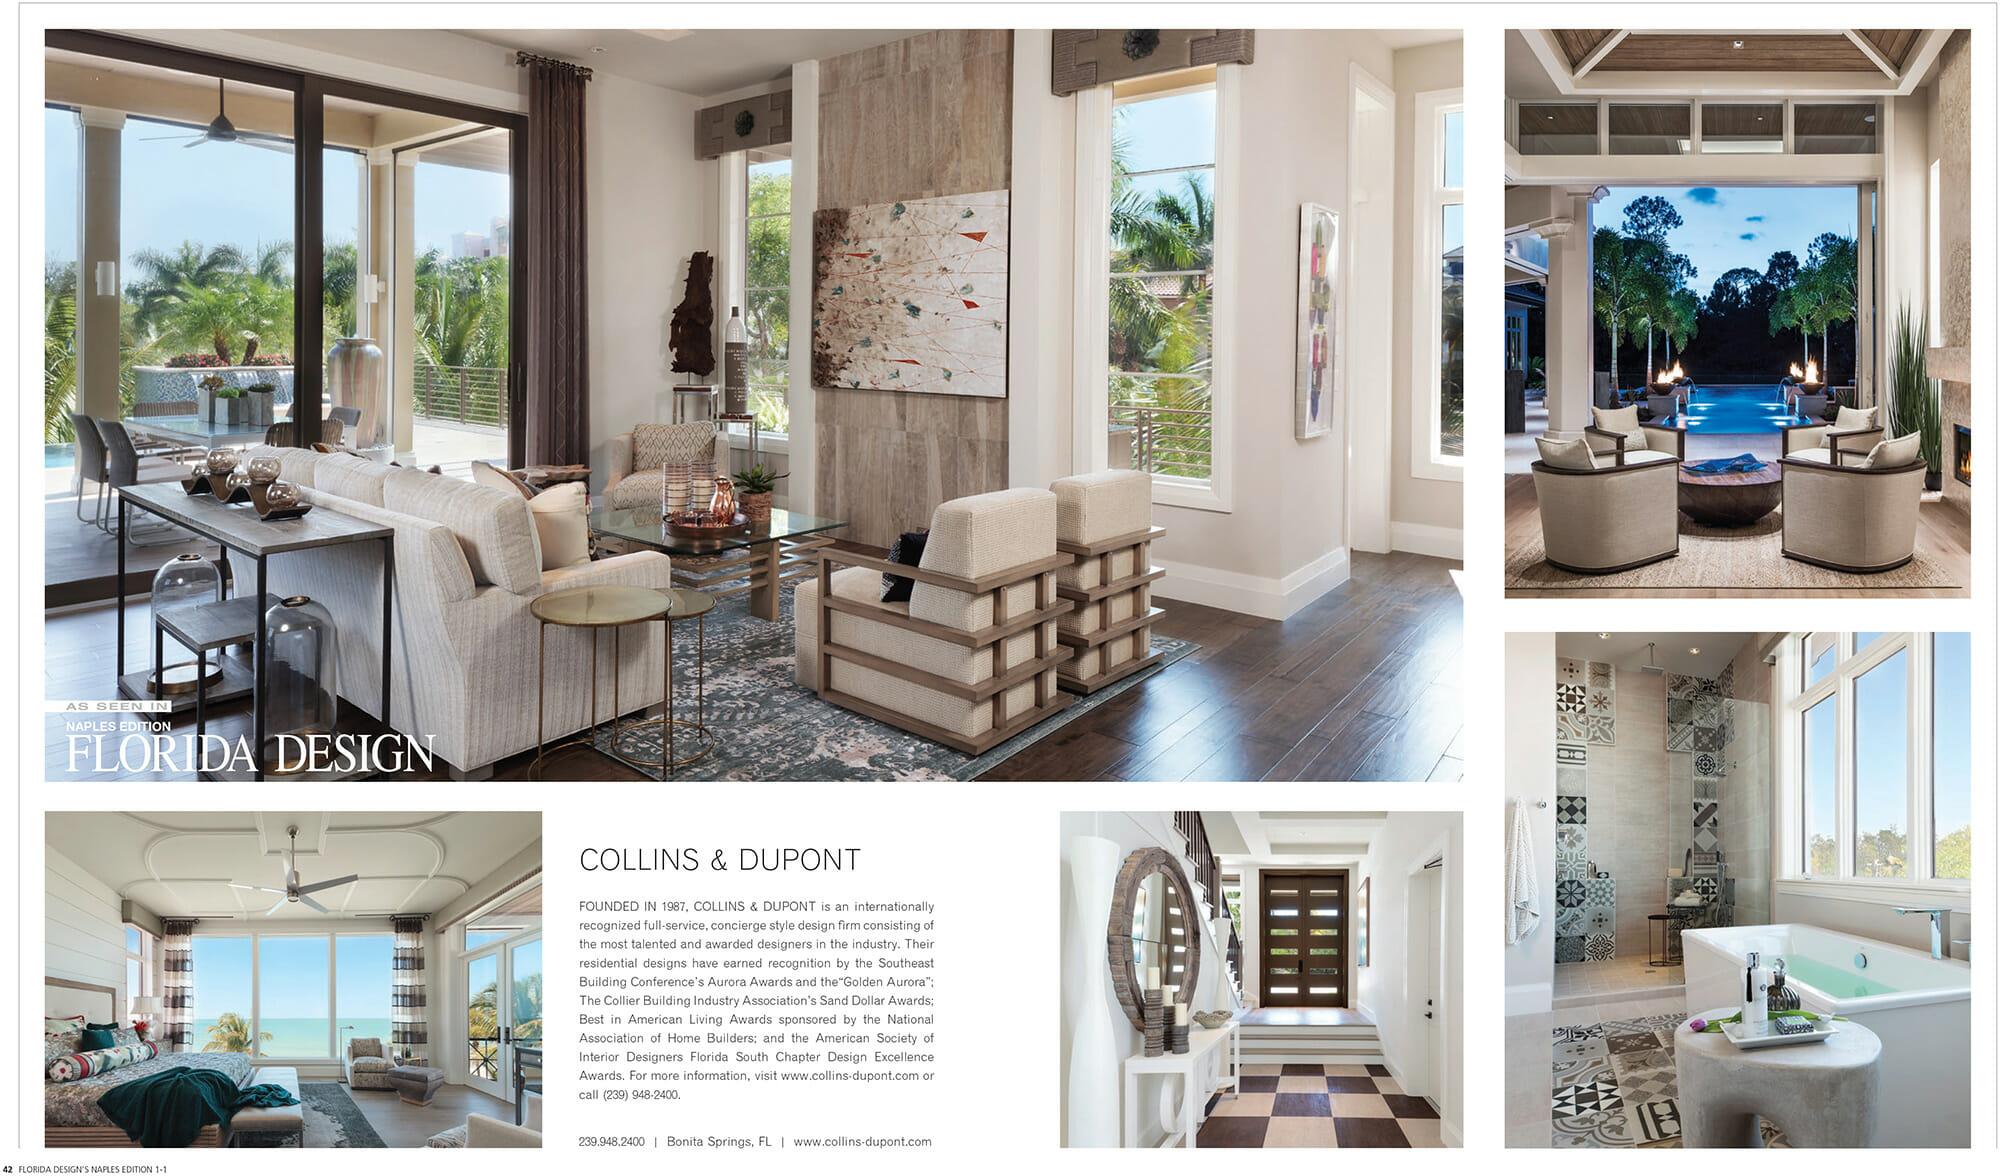 Naples FL Design 1